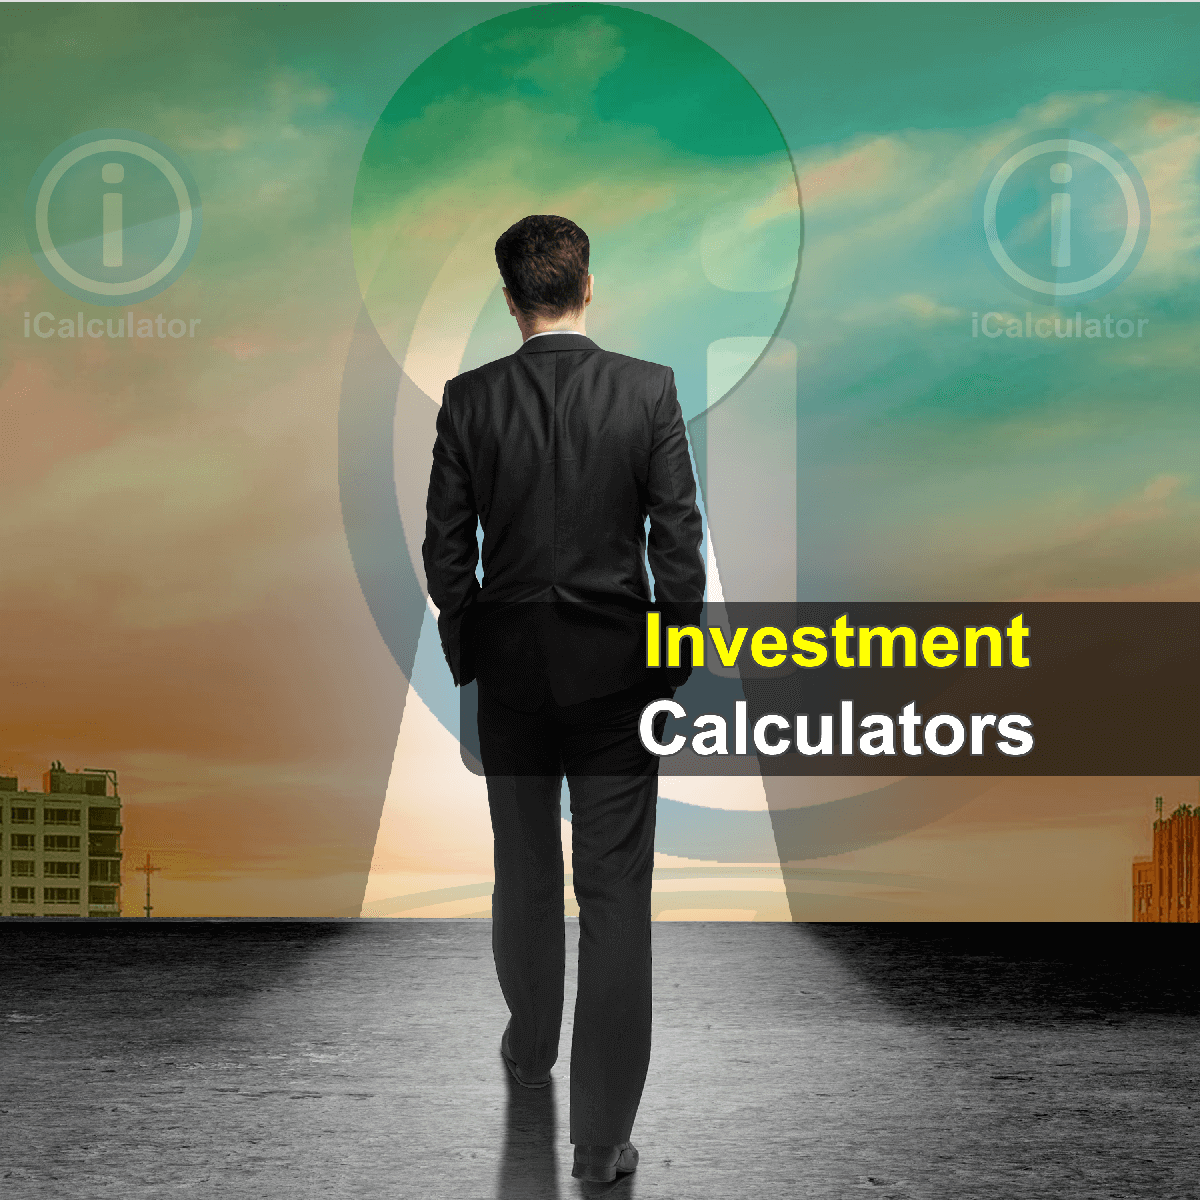 Investment Calculators. This image shows a corporate investor considering the merits of an investment portfolio and calculating investment risk using the investment calculators provided by iCalculator.